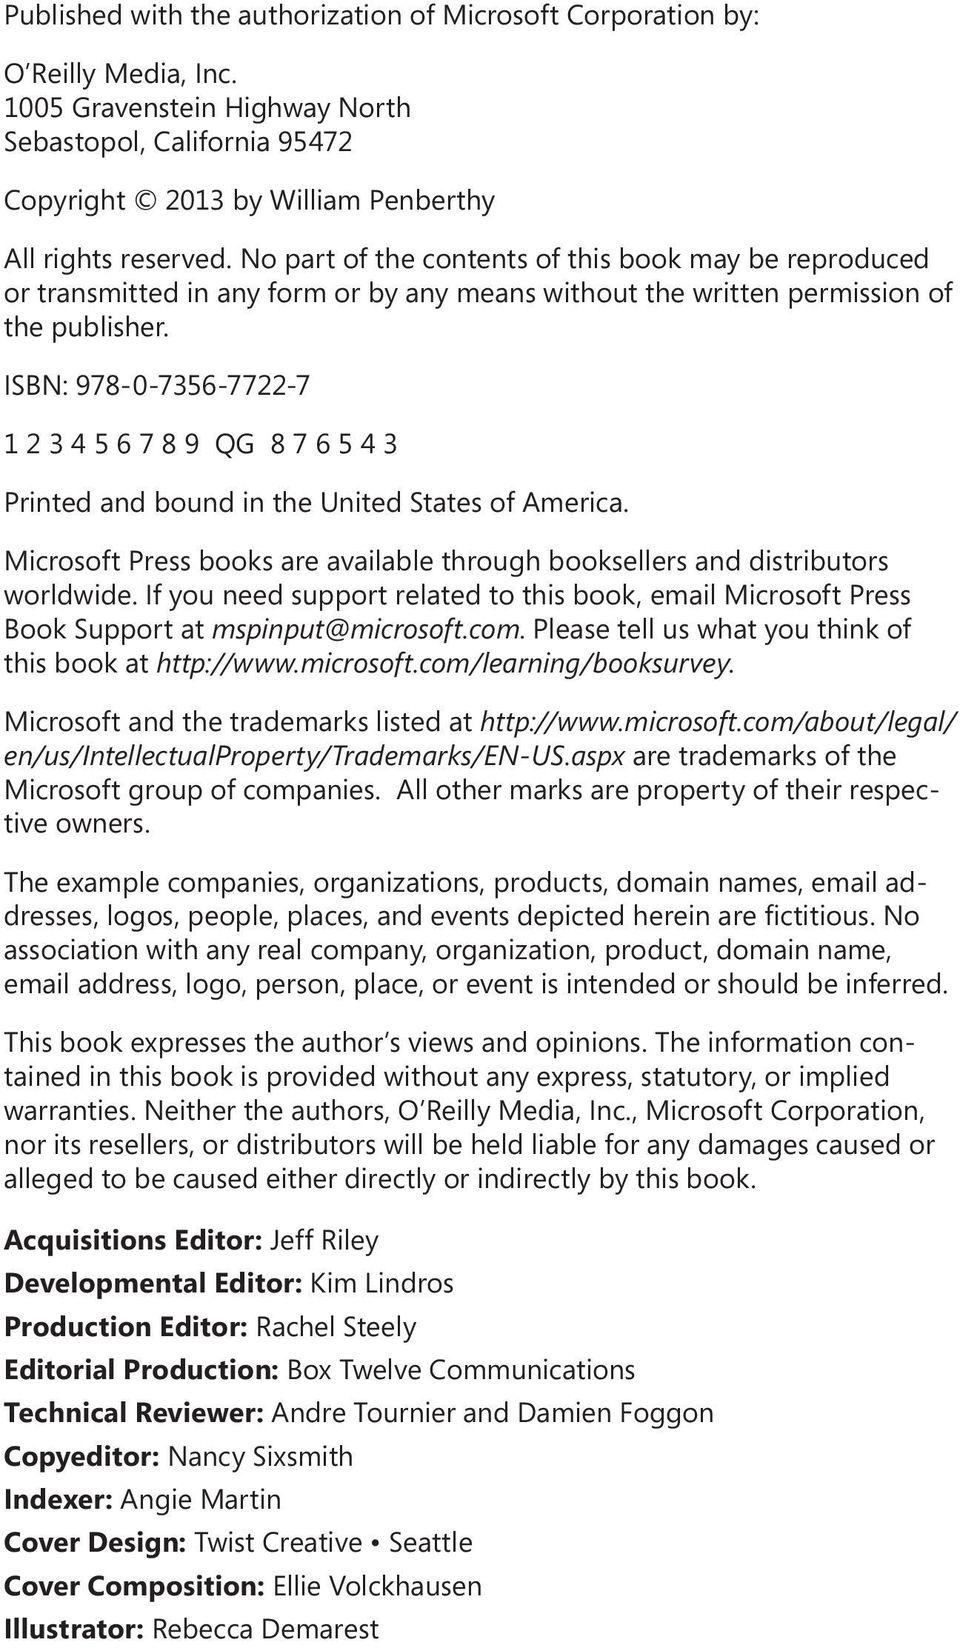 ISBN: 978-0-7356-7722-7 1 2 3 4 5 6 7 8 9 QG 8 7 6 5 4 3 Printed and bound in the United States of America. Microsoft Press books are available through booksellers and distributors worldwide.